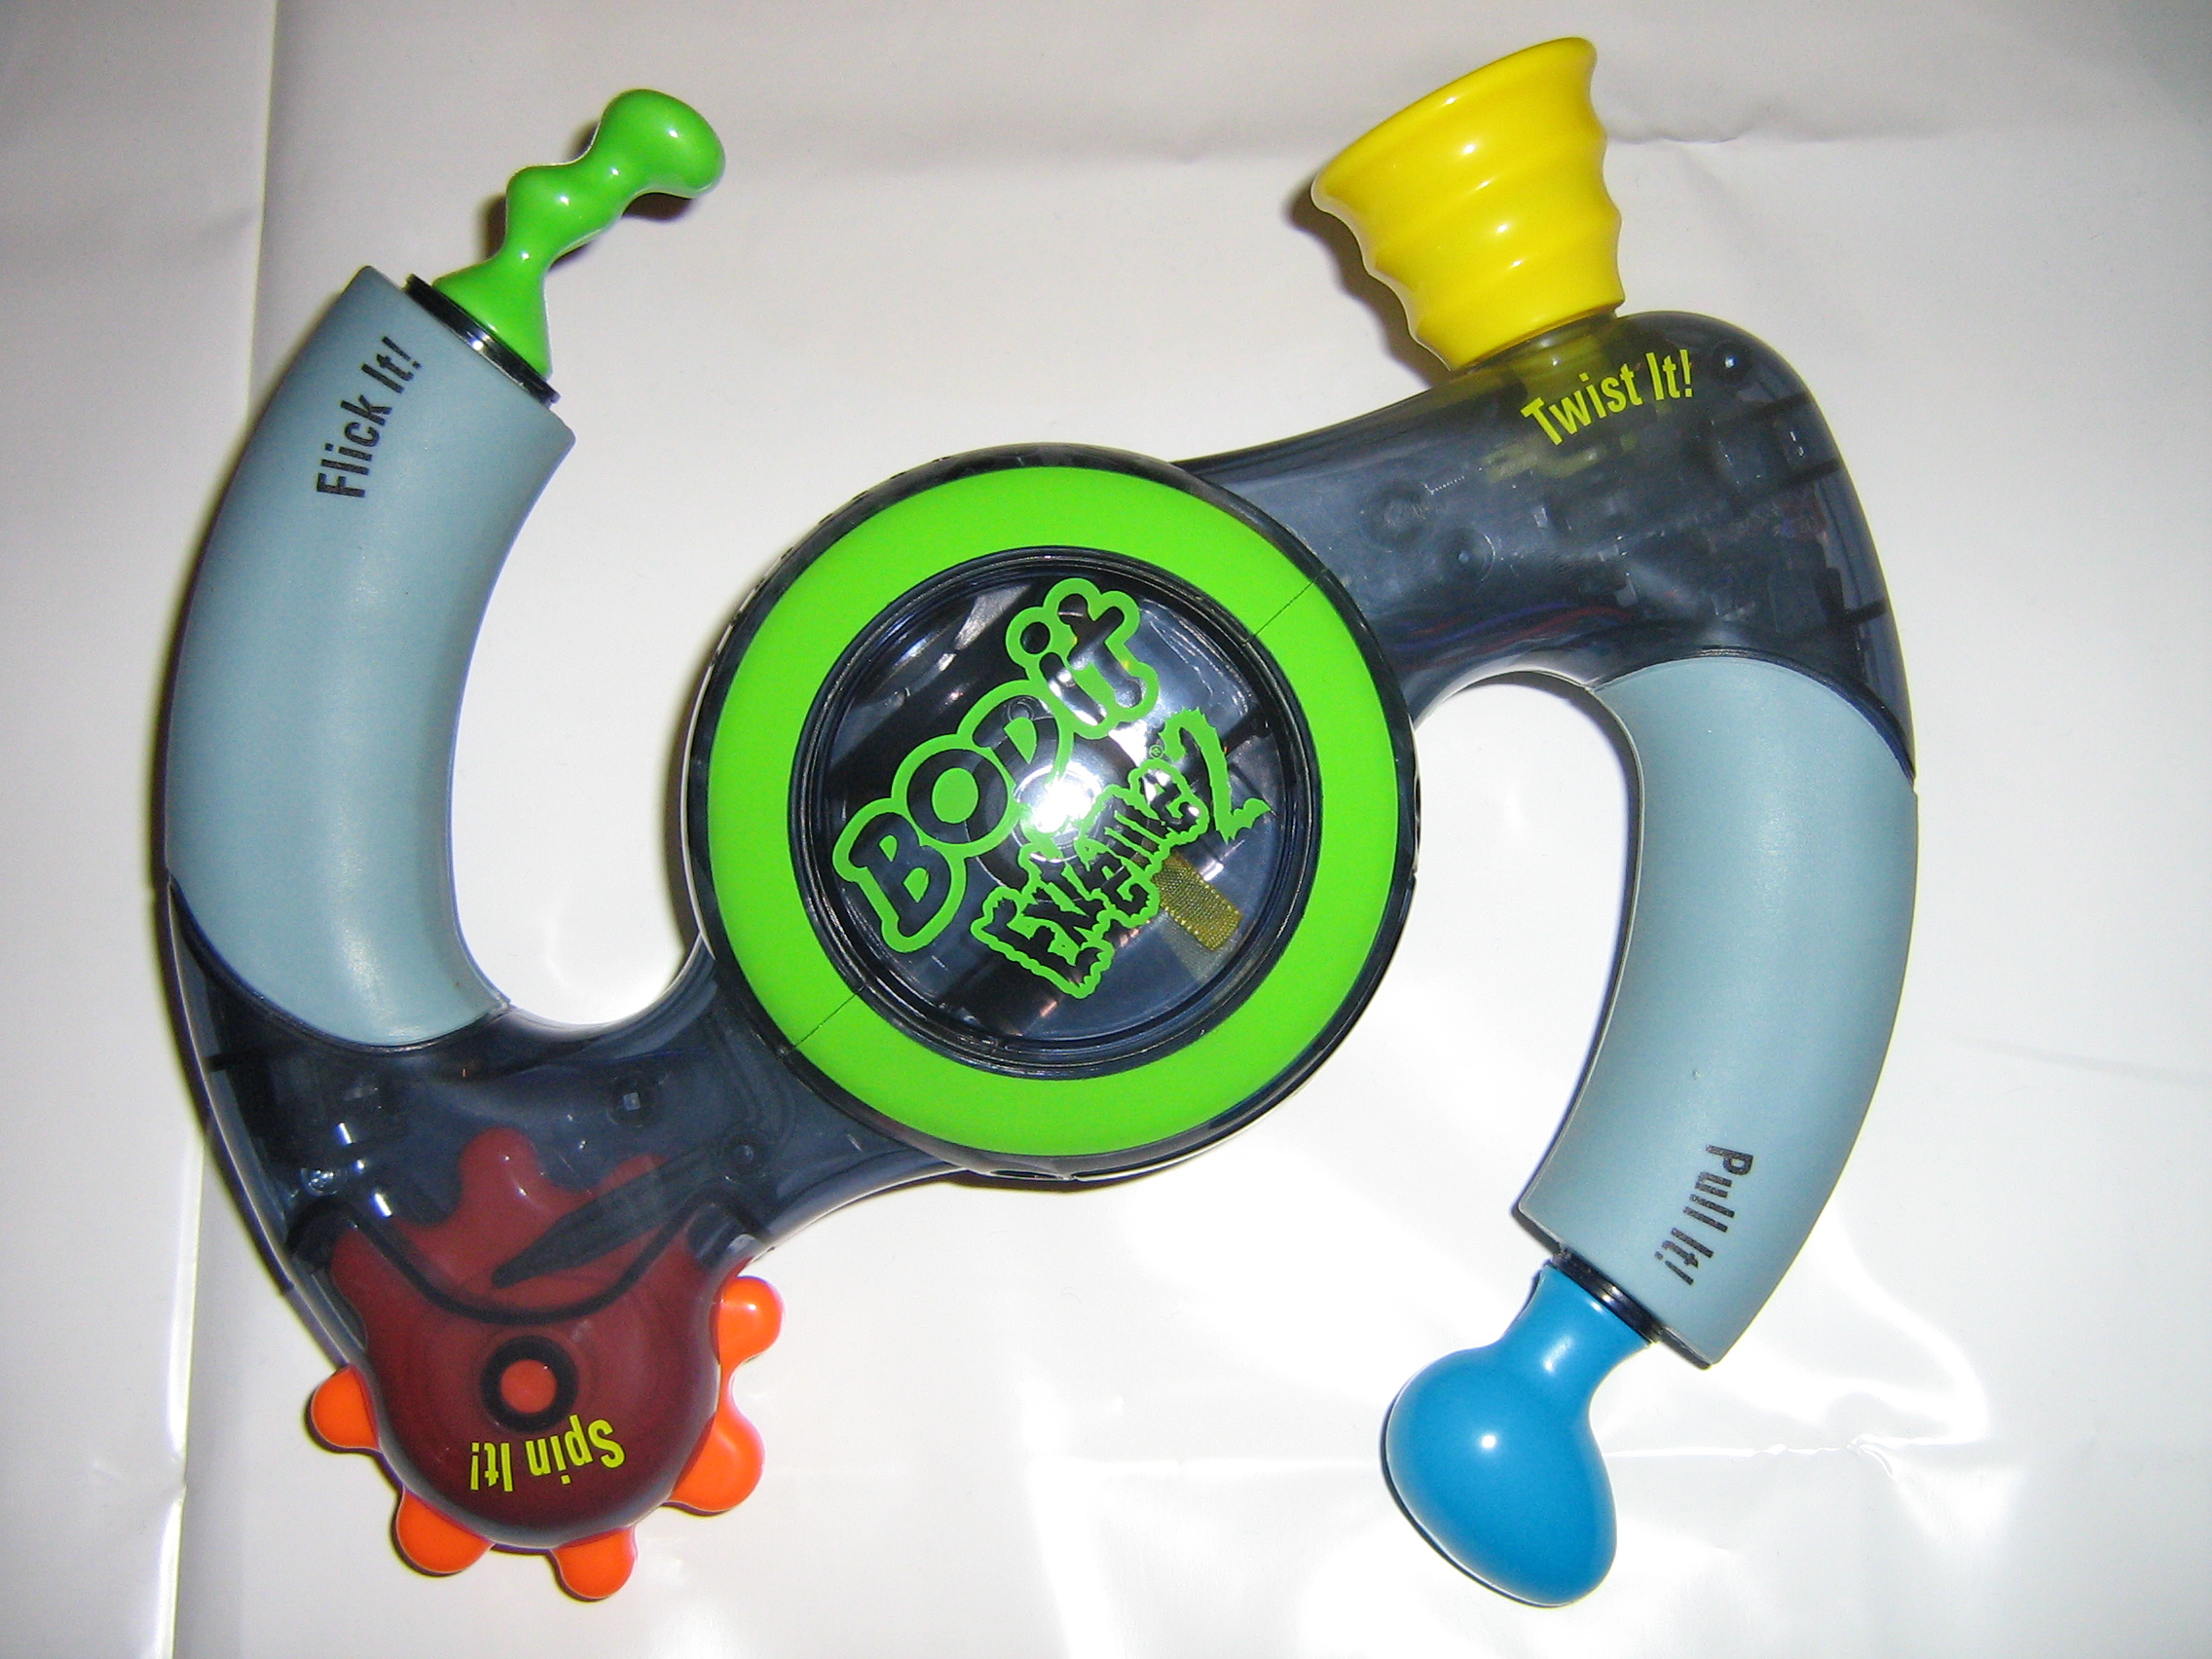 http://upload.wikimedia.org/wikipedia/commons/b/b1/Bop-It_Extreme_2_(Green_Side).jpg